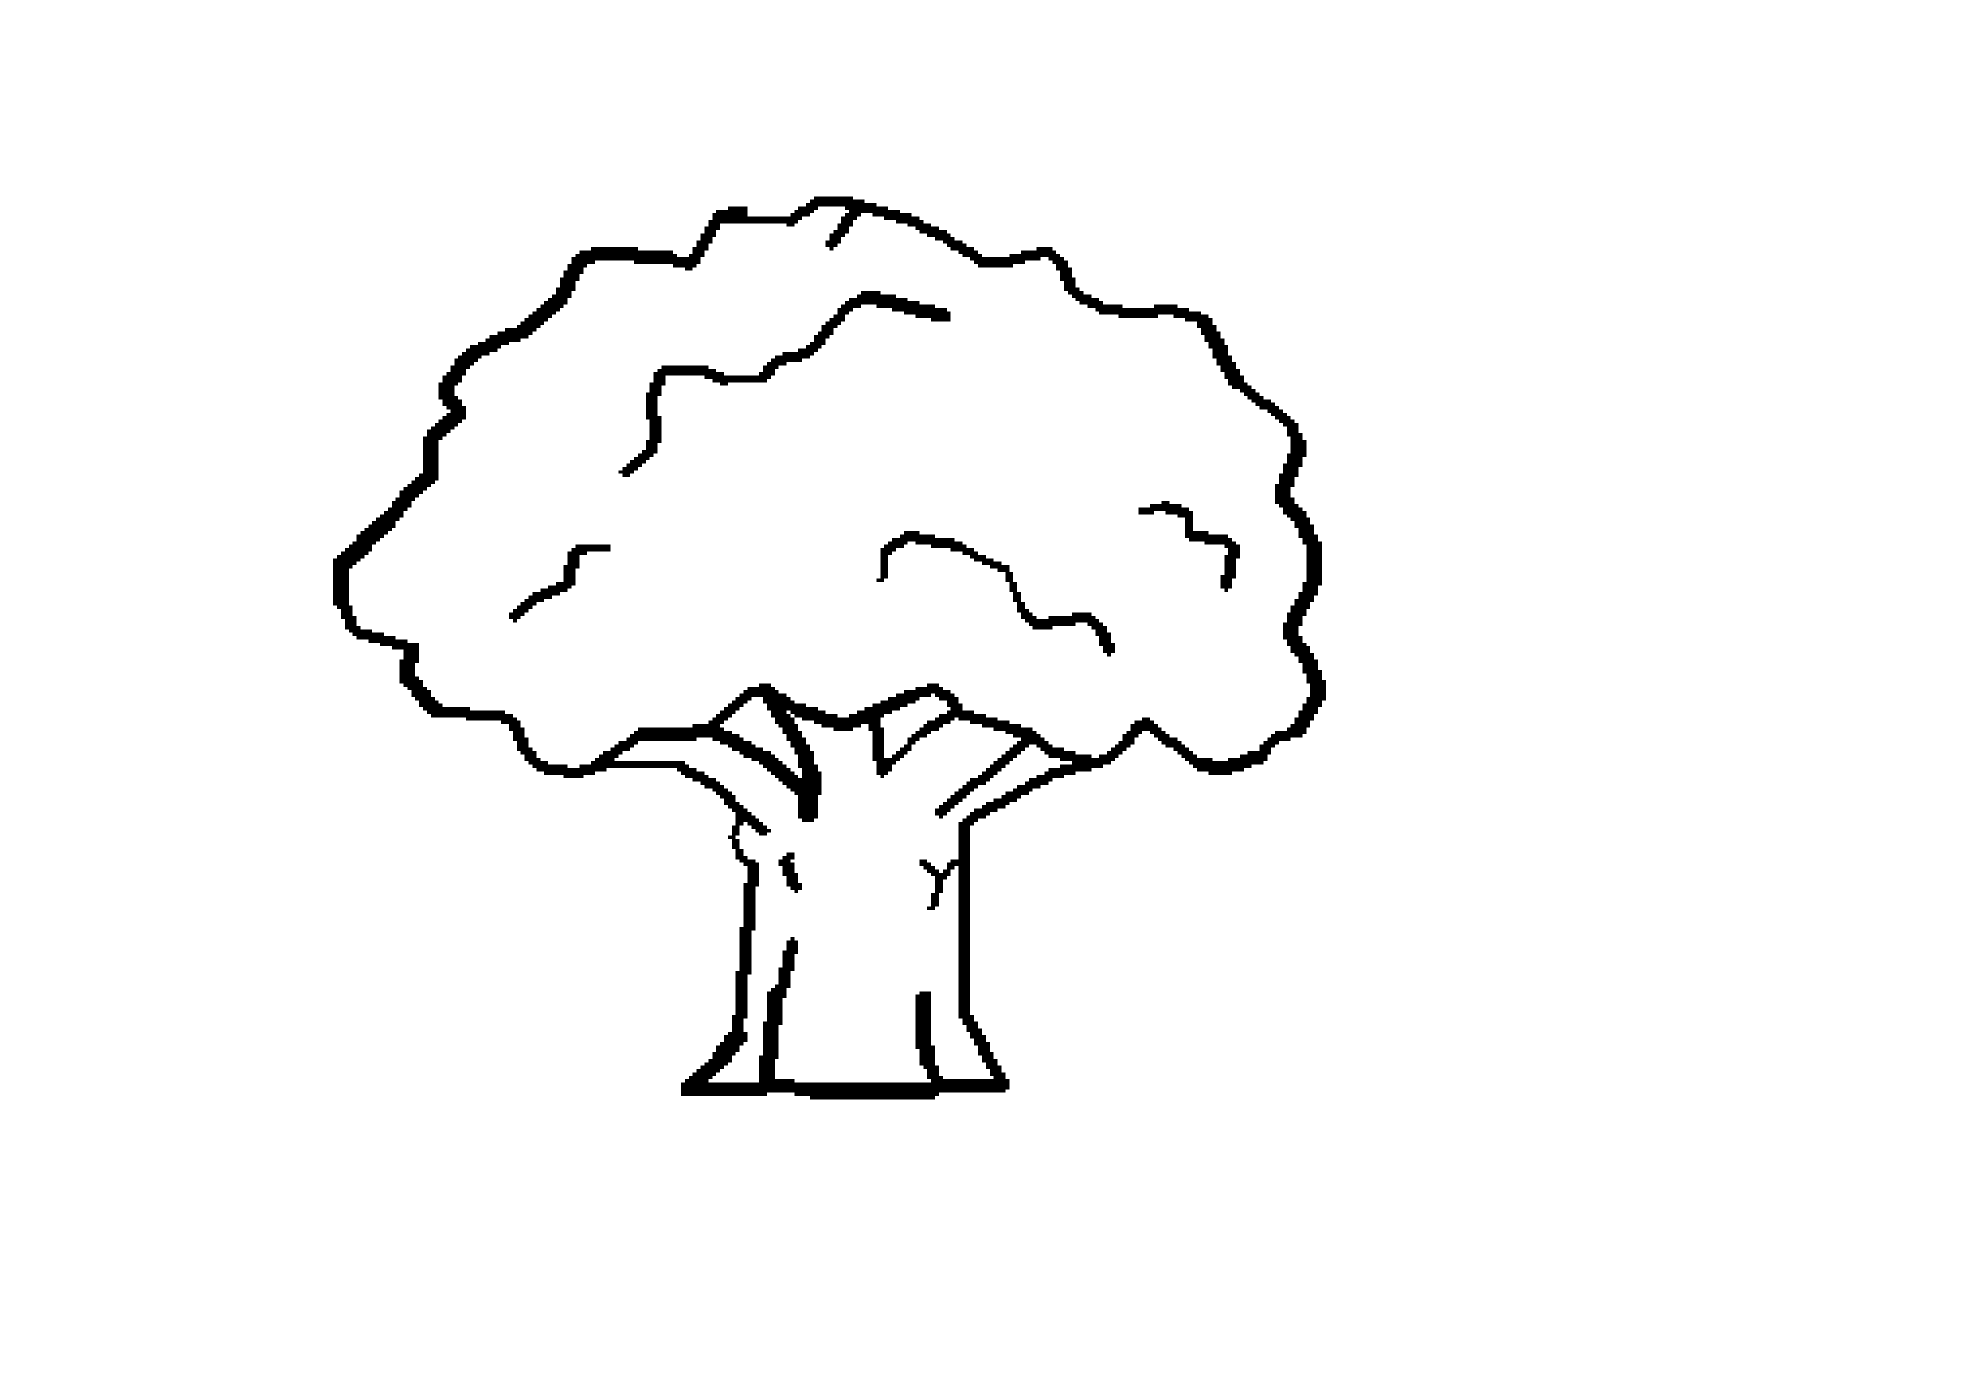 Zzve Line Art : Tree line art cliparts